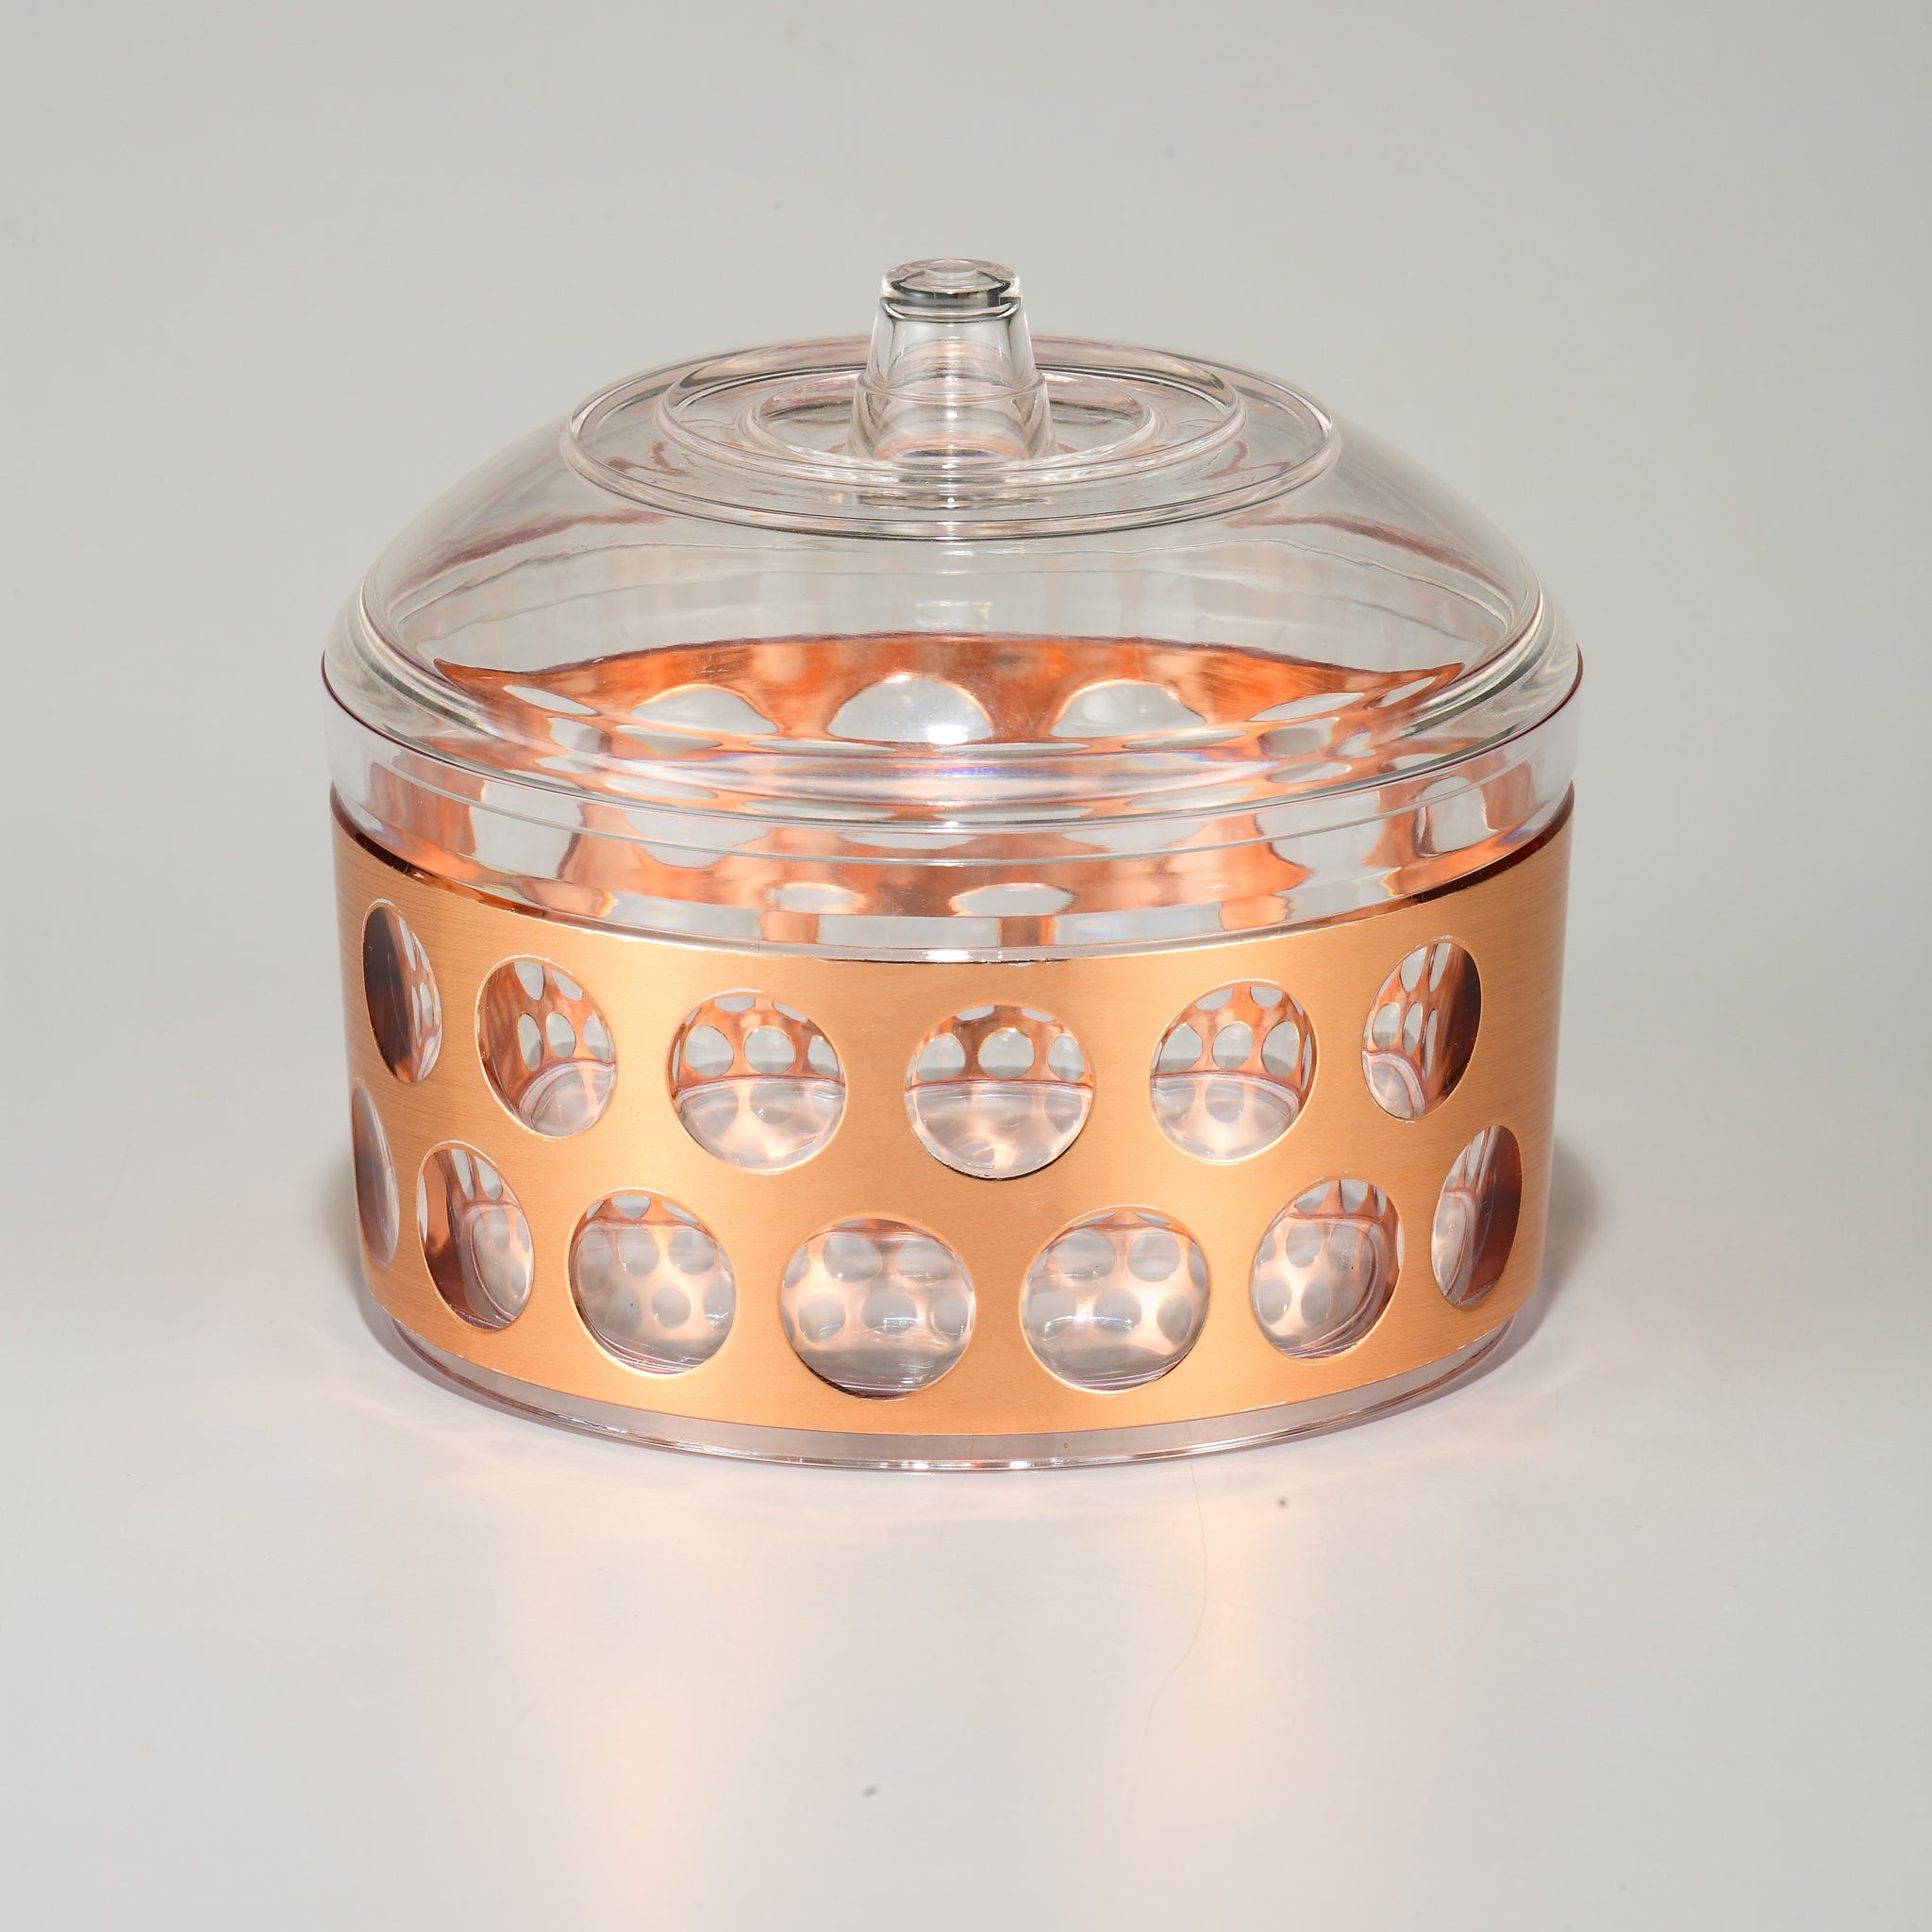 RoyalFord RF8229 Rose Gold Acrylic Candy,Pot, 810ml